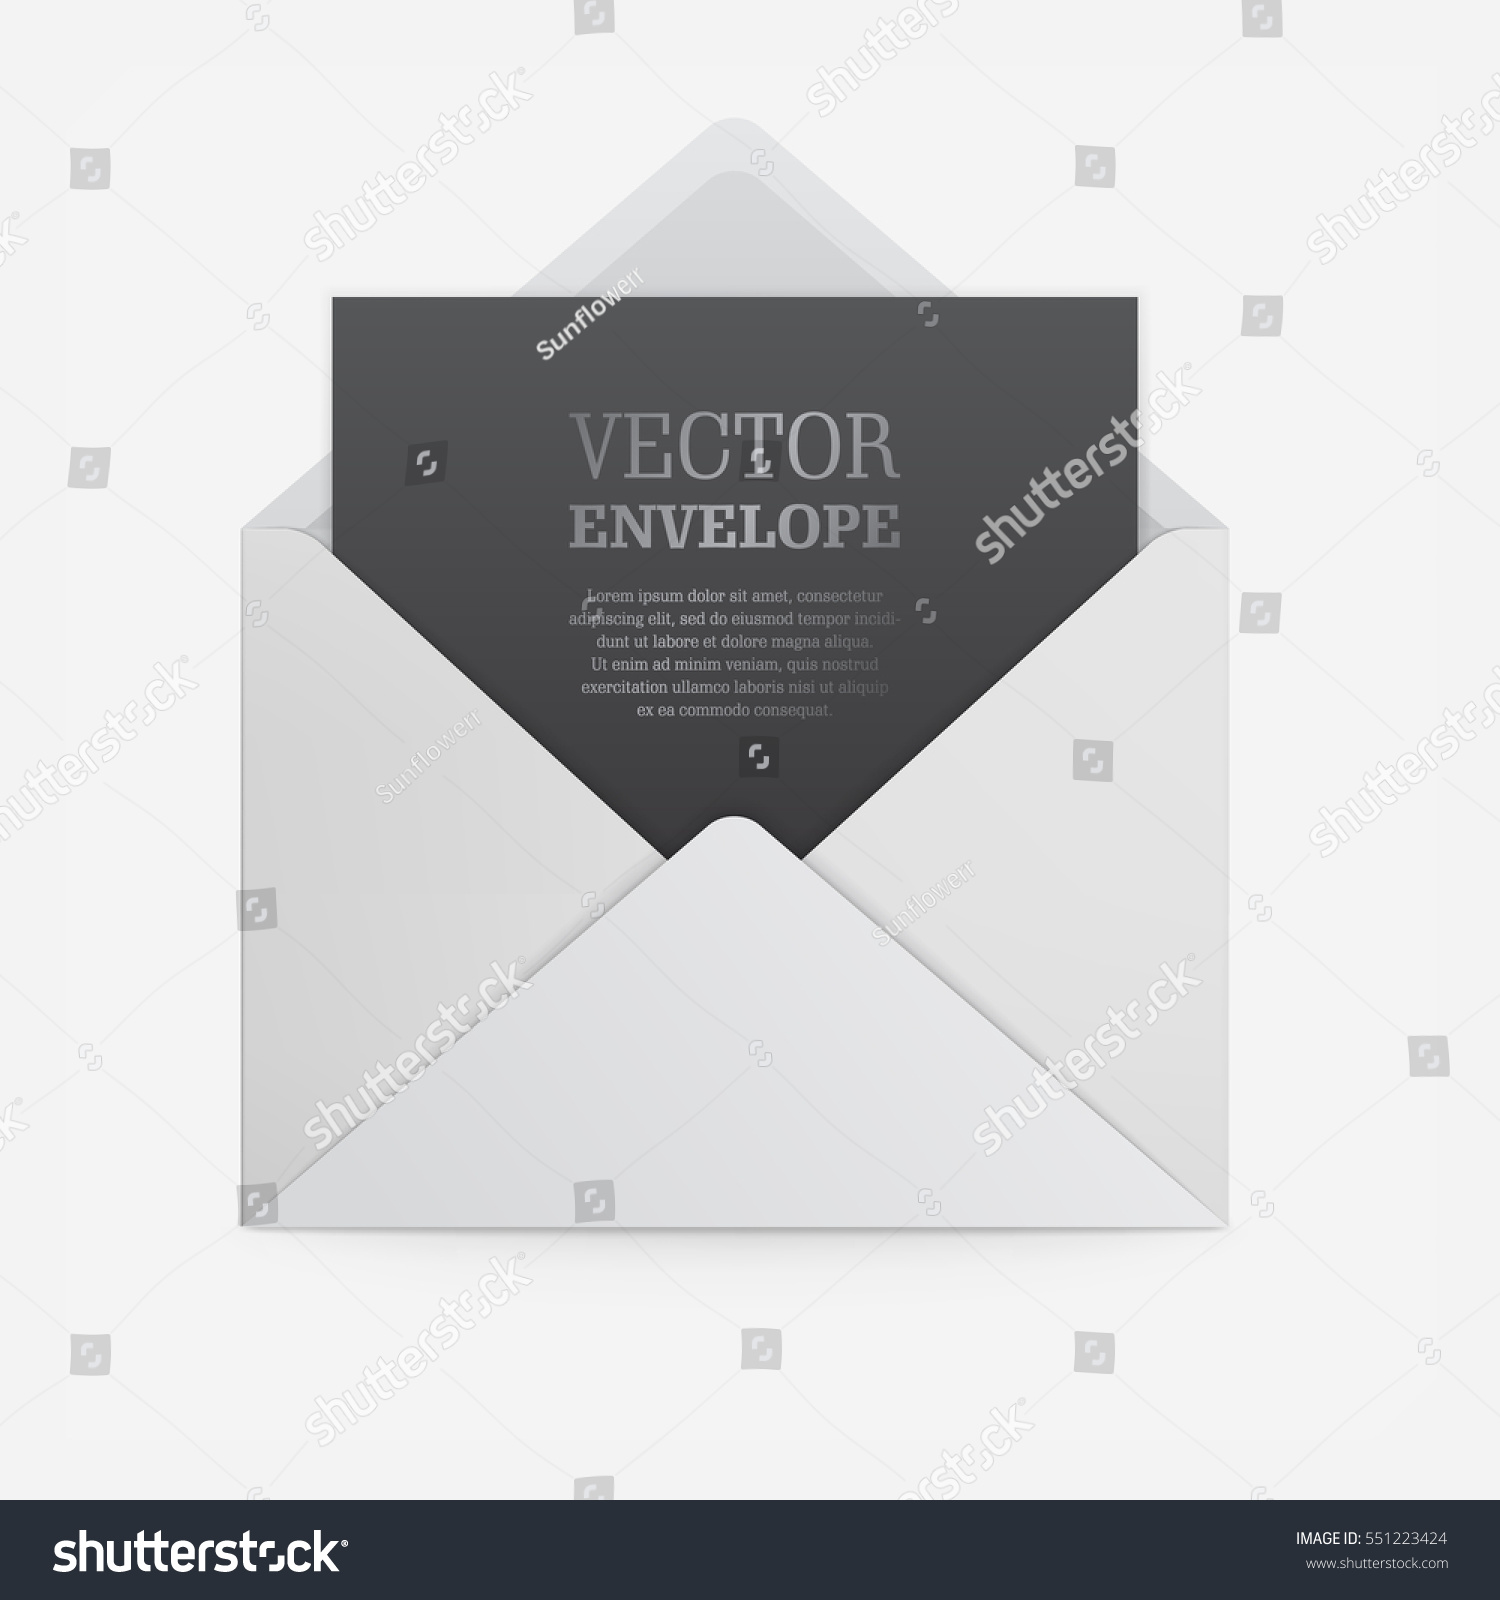 Nice 1 2 3 Nu Opgaver Kapitel Resume Thin 1 Page Resume Templates Shaped 1 Year Experienced Software Developer Resume Sample 1.5 Inch Circle Template Youthful 10 Business Card Template Fresh10 Words Not To Put On Your Resume Blank Template White Paper Envelope Empty Stock Vector 551223424 ..